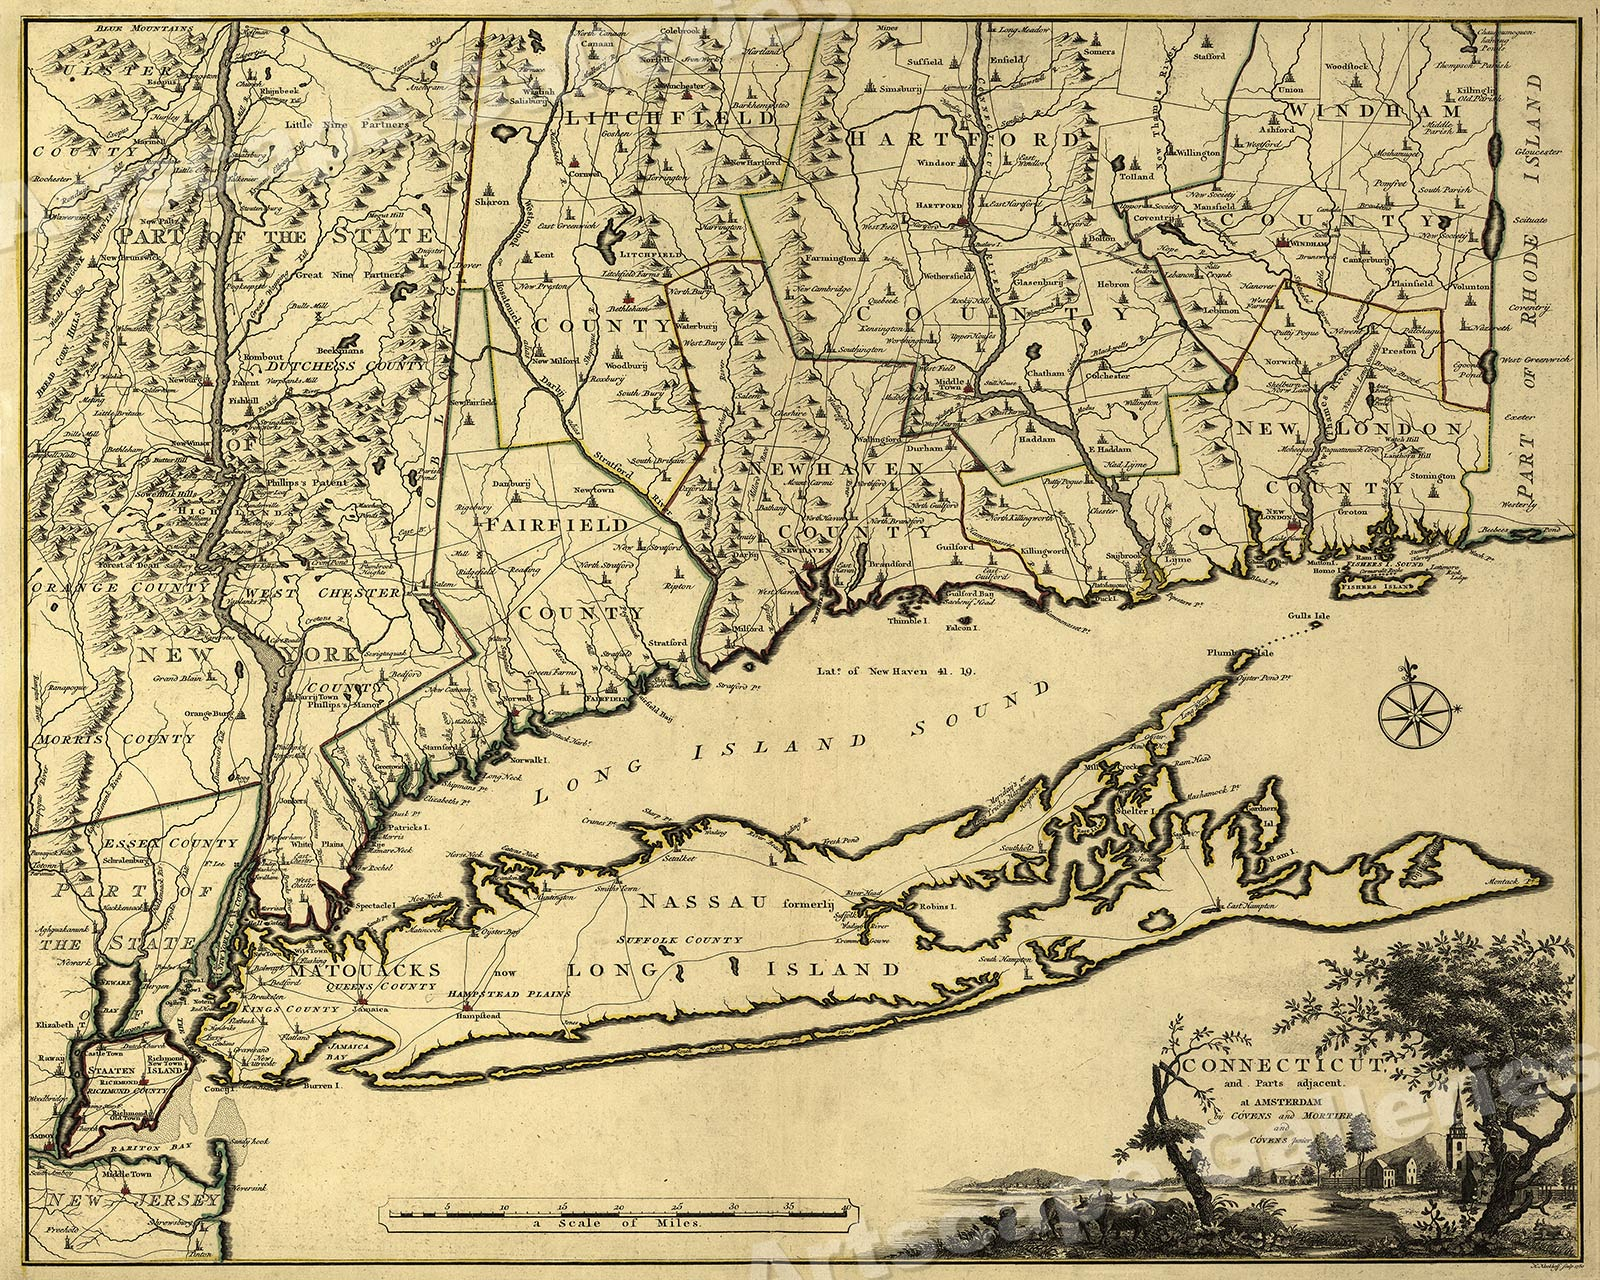 1777 Map Of Connecticut New York New Jersey Long Island 24x30